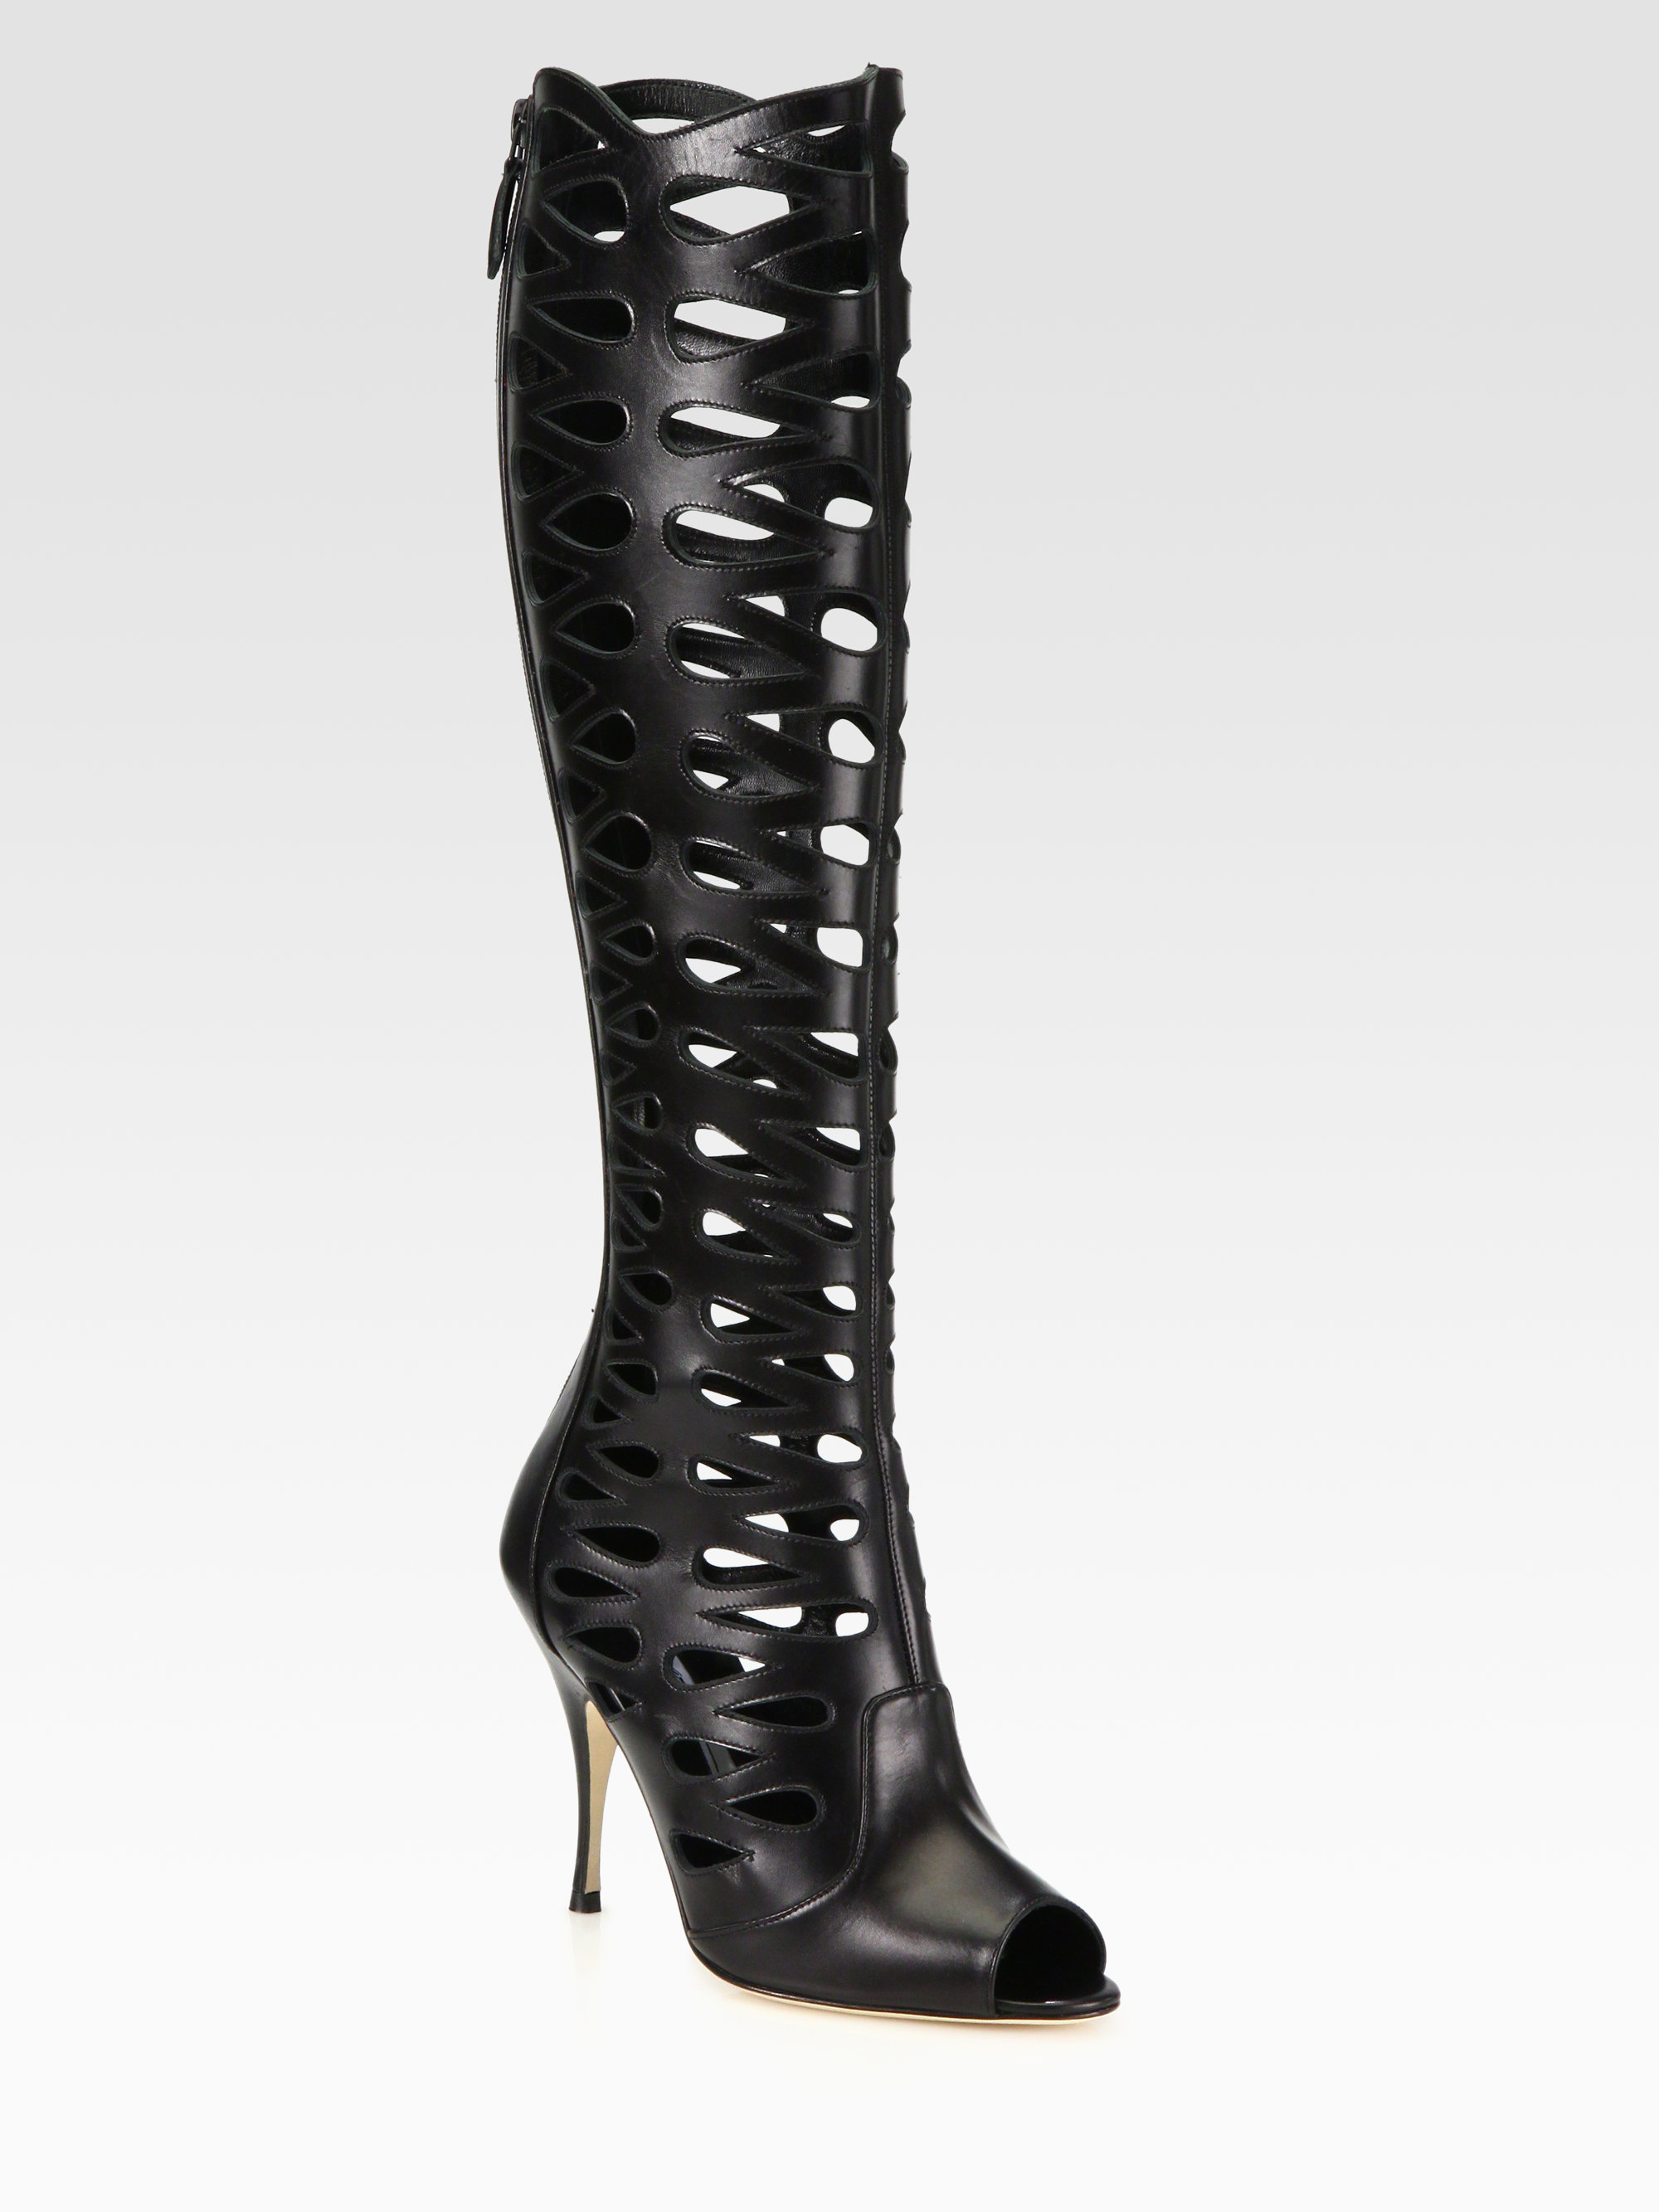 ca761e3a138d73 Lyst - Brian Atwood Electra Leather Cutout Knee high Boots in Black